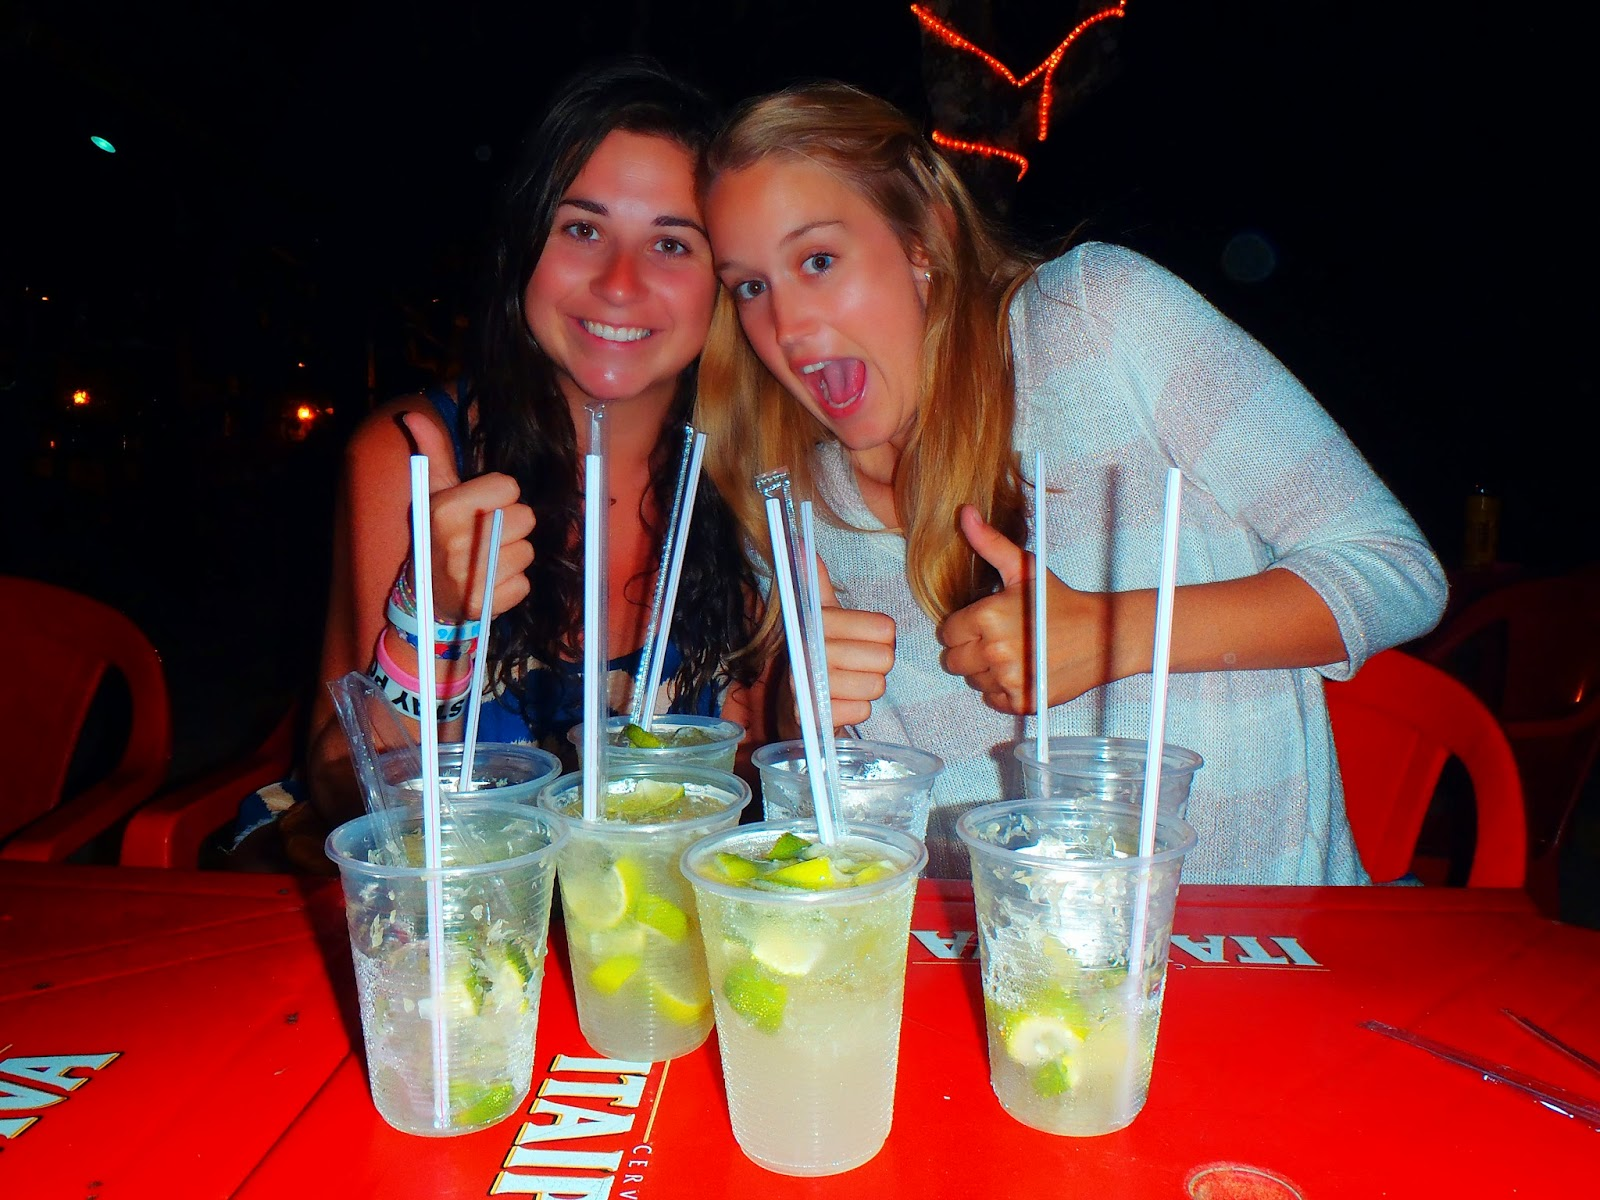 Friends drinking Caiprihinas in Brazil